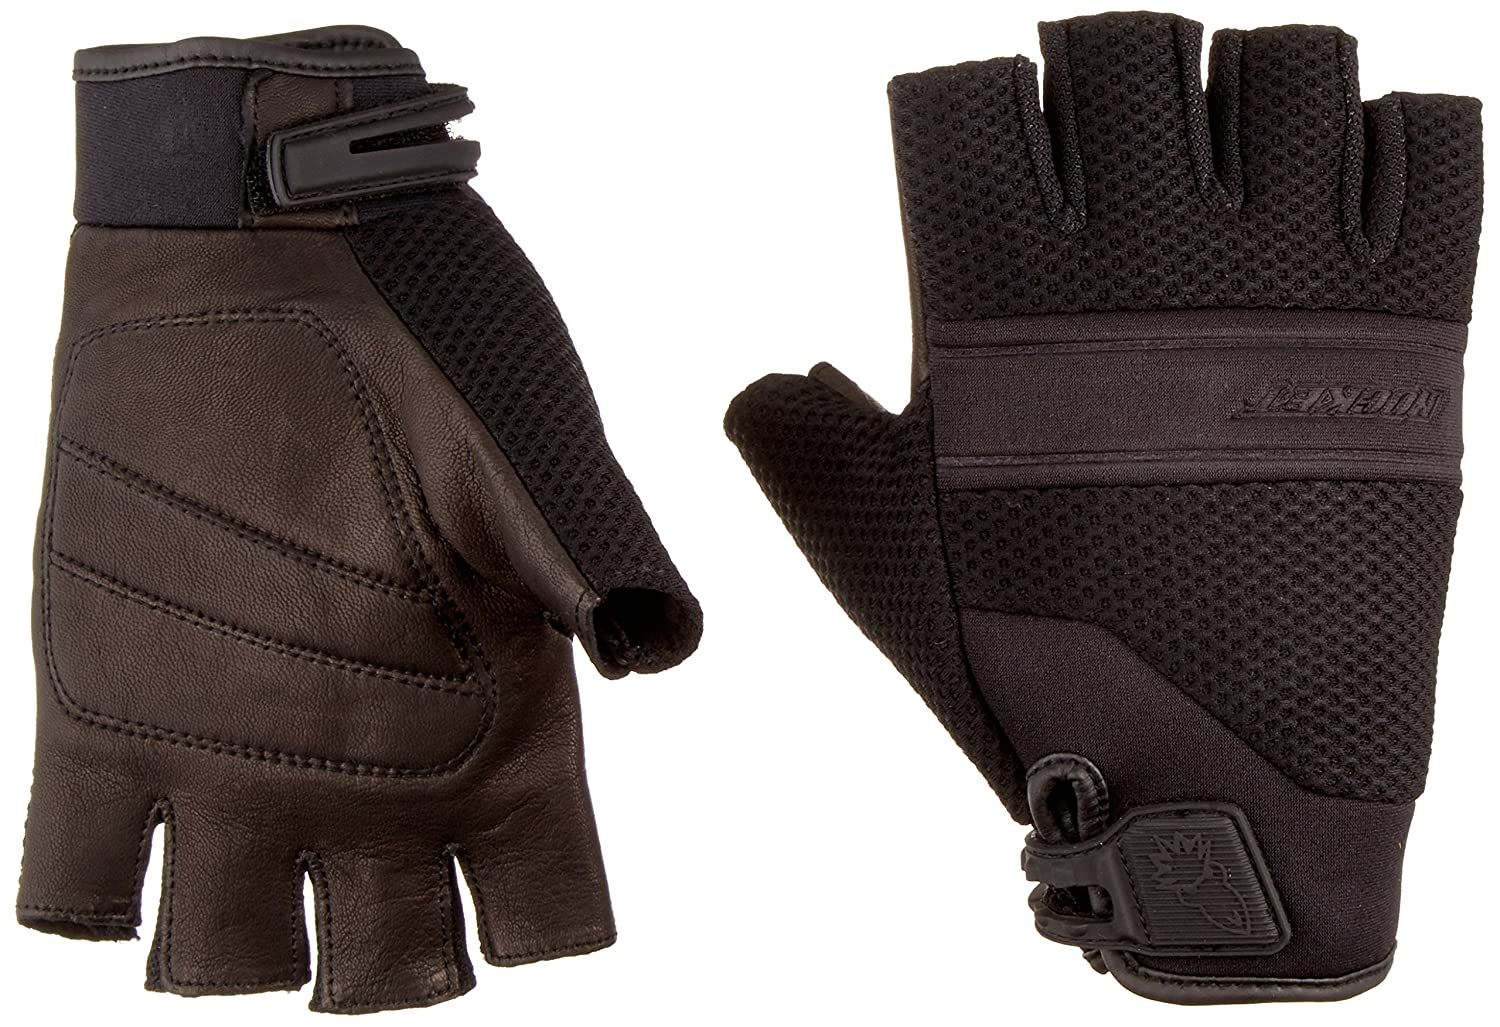 Joe Rocket Motorcycle Gloves